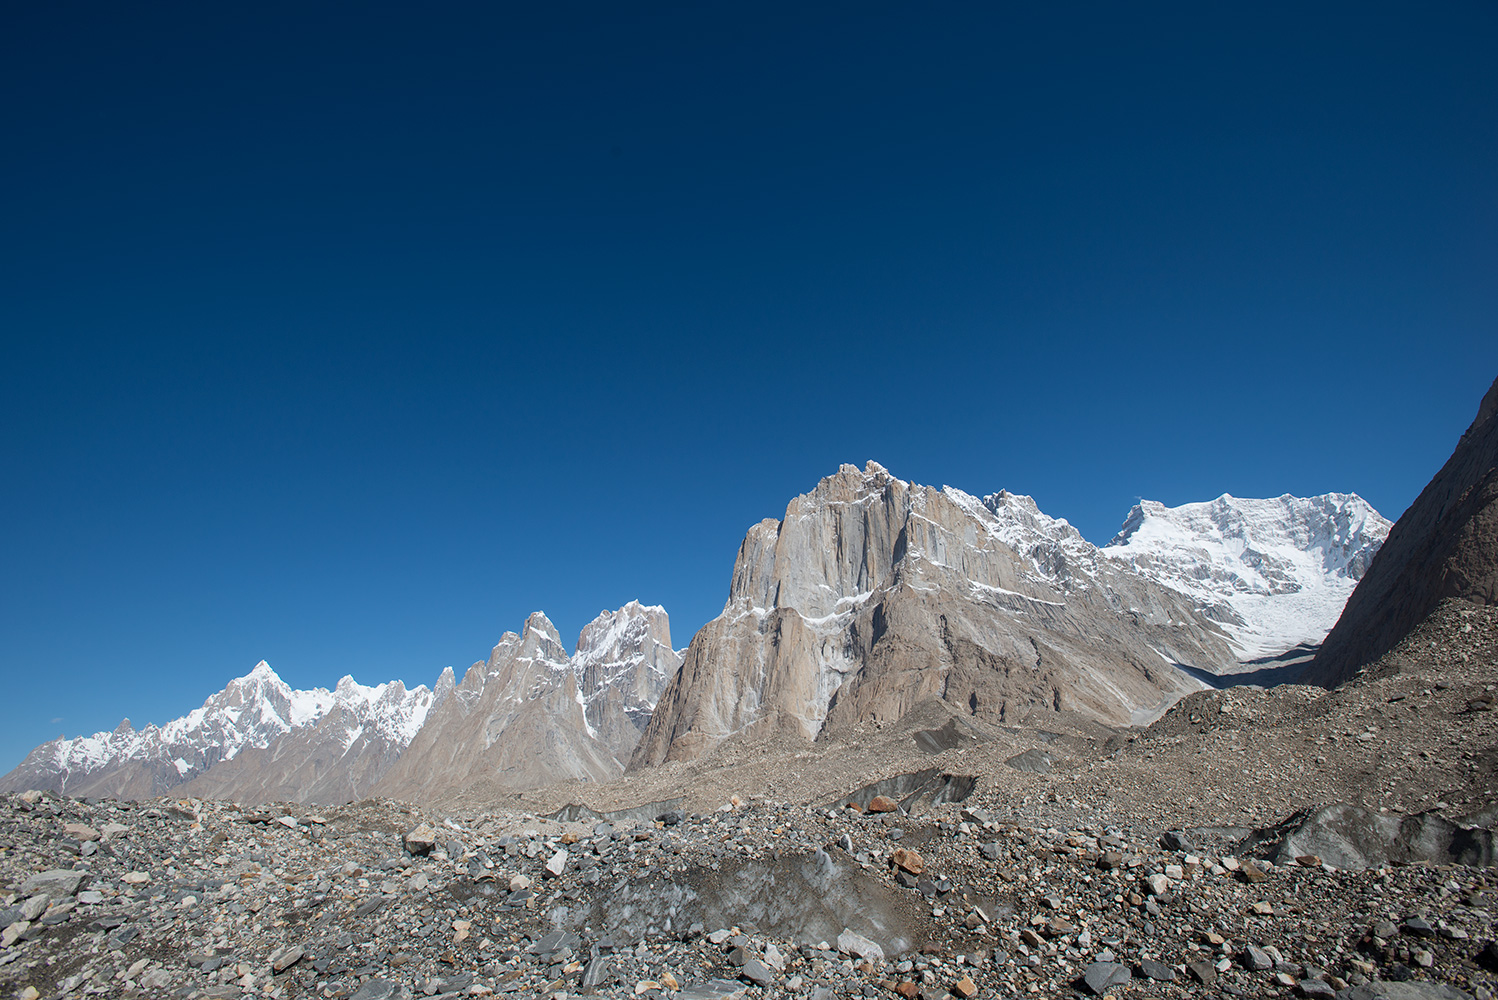 A view of the peaks lining the northern flanks of the glacier from near Urdokas. Paiju Peak, the Trango Towers, Cathedral Spires and Biale